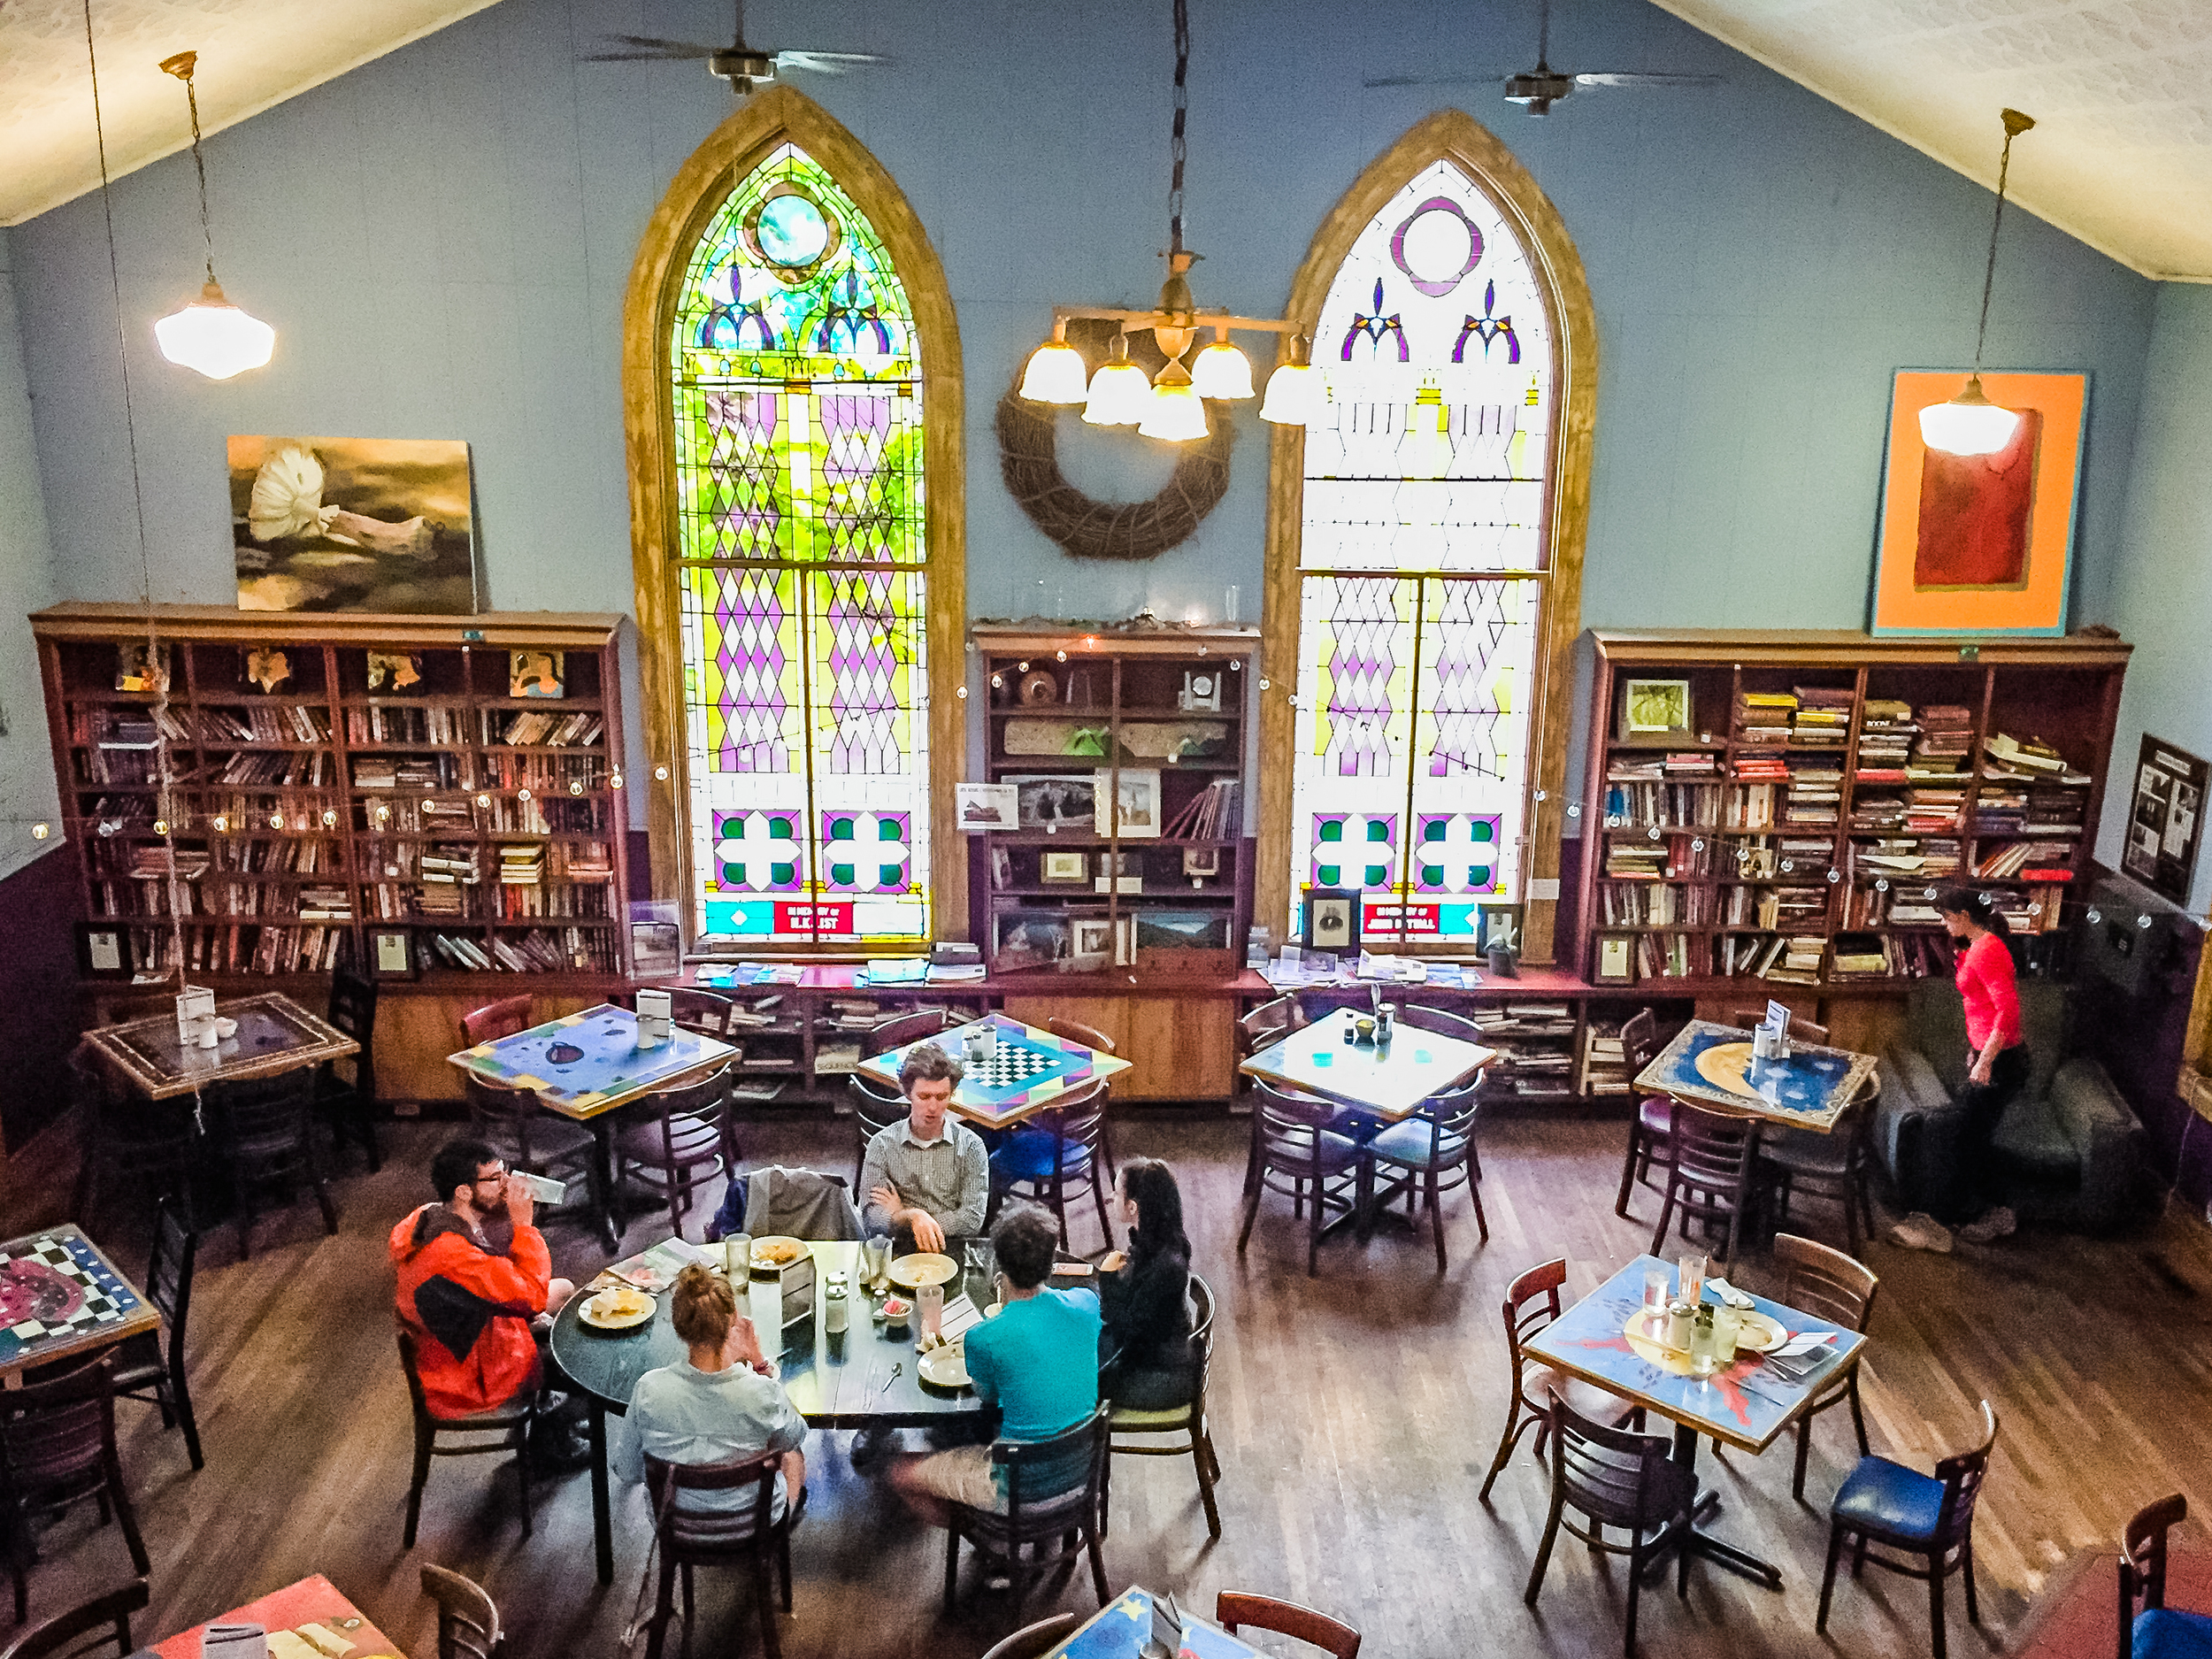 Cathedral Cafe, Fayetteville, West Virginia